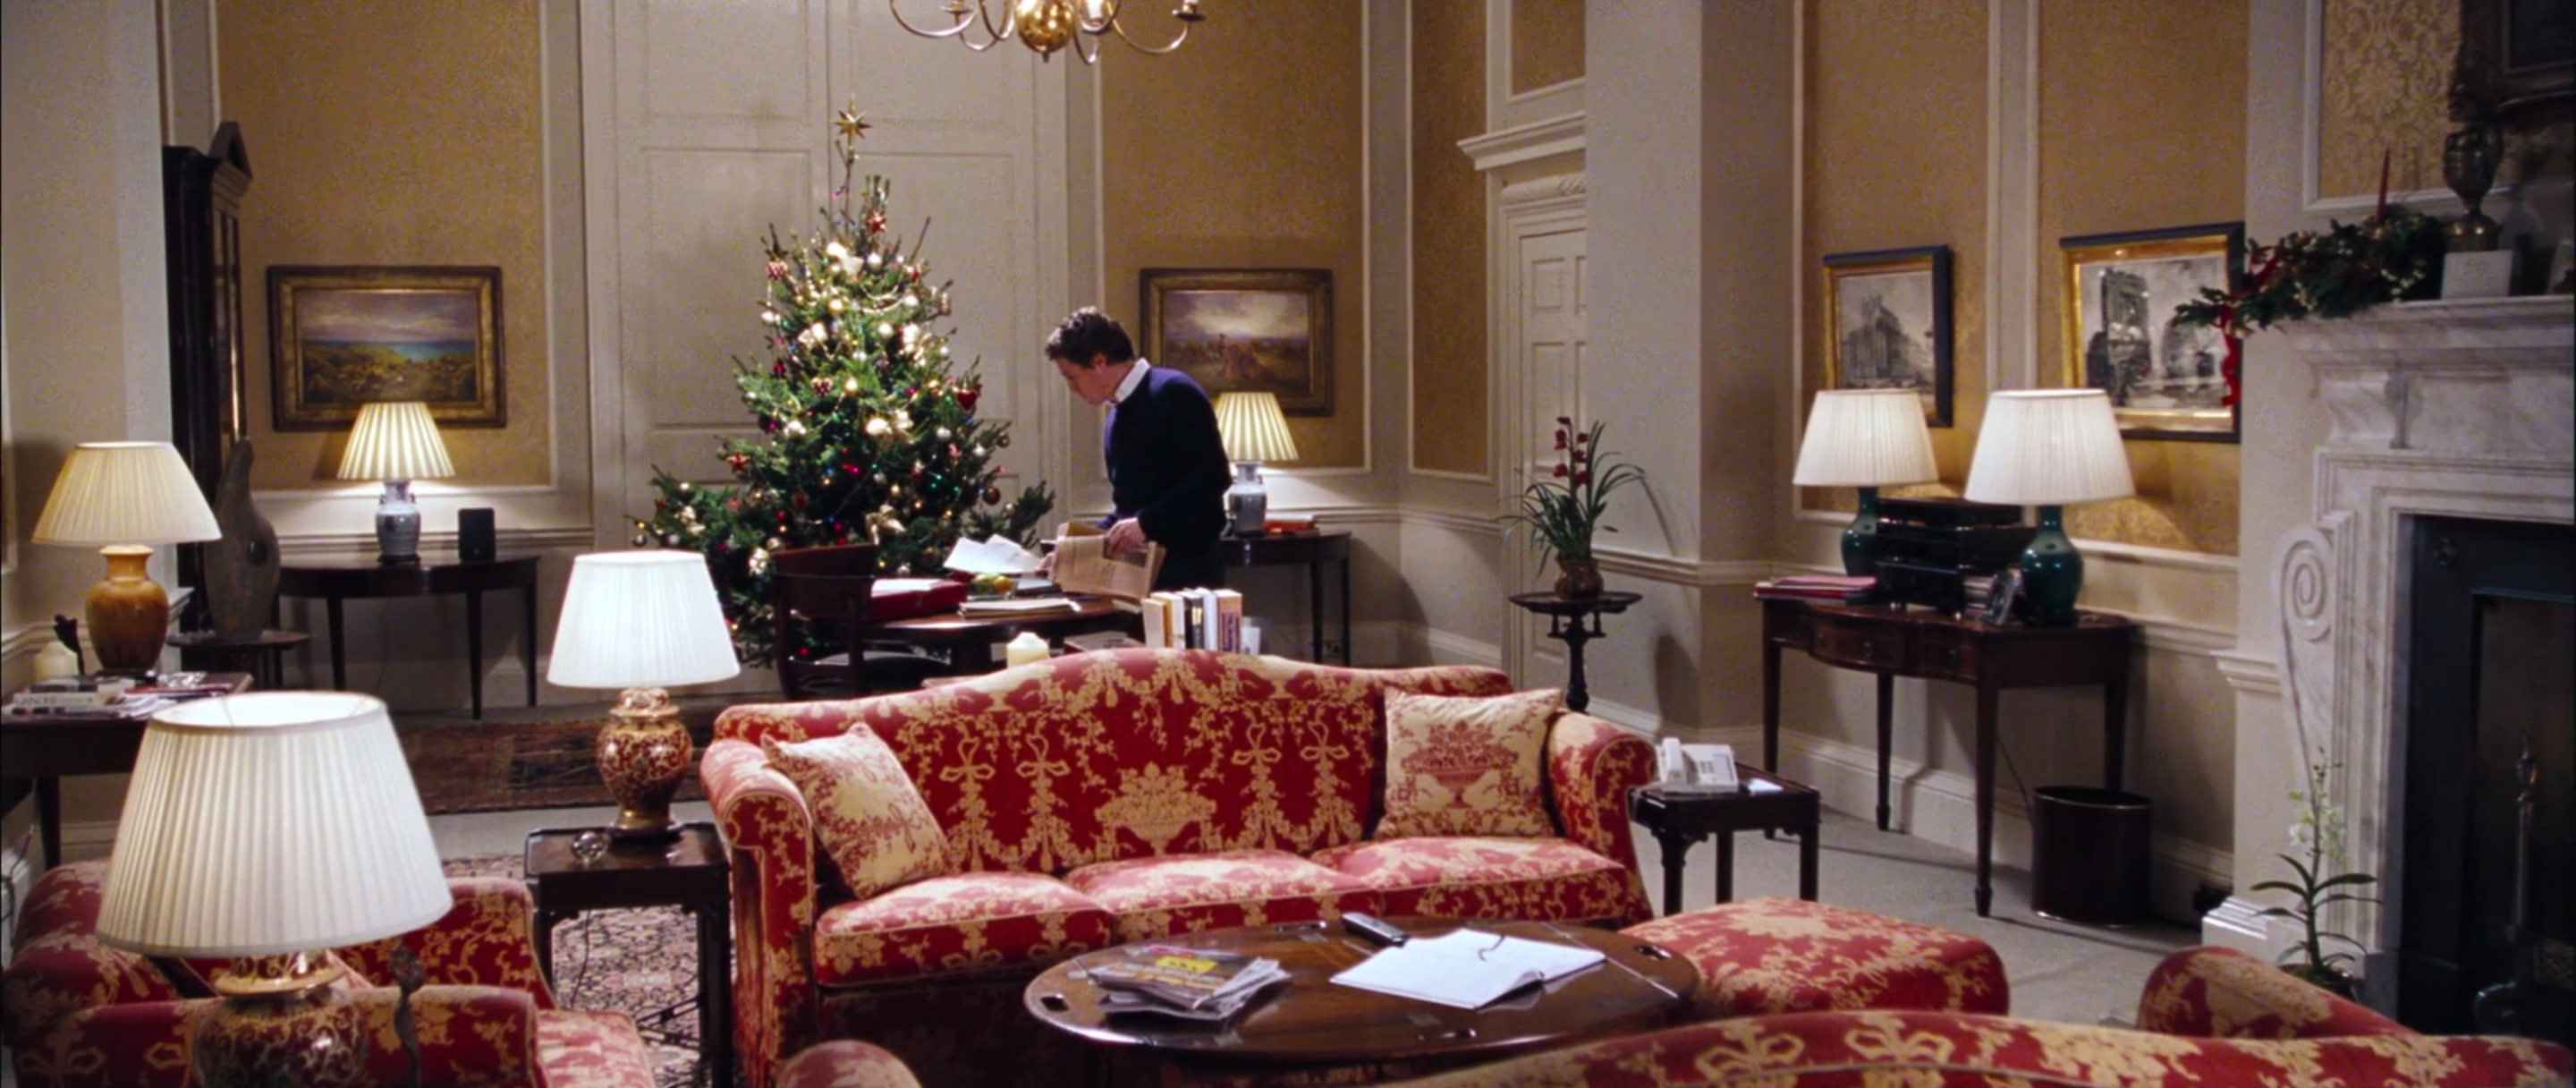 We Ranked the Spaces of 'Love Actually' Just in Time for the Holidays | Hunker